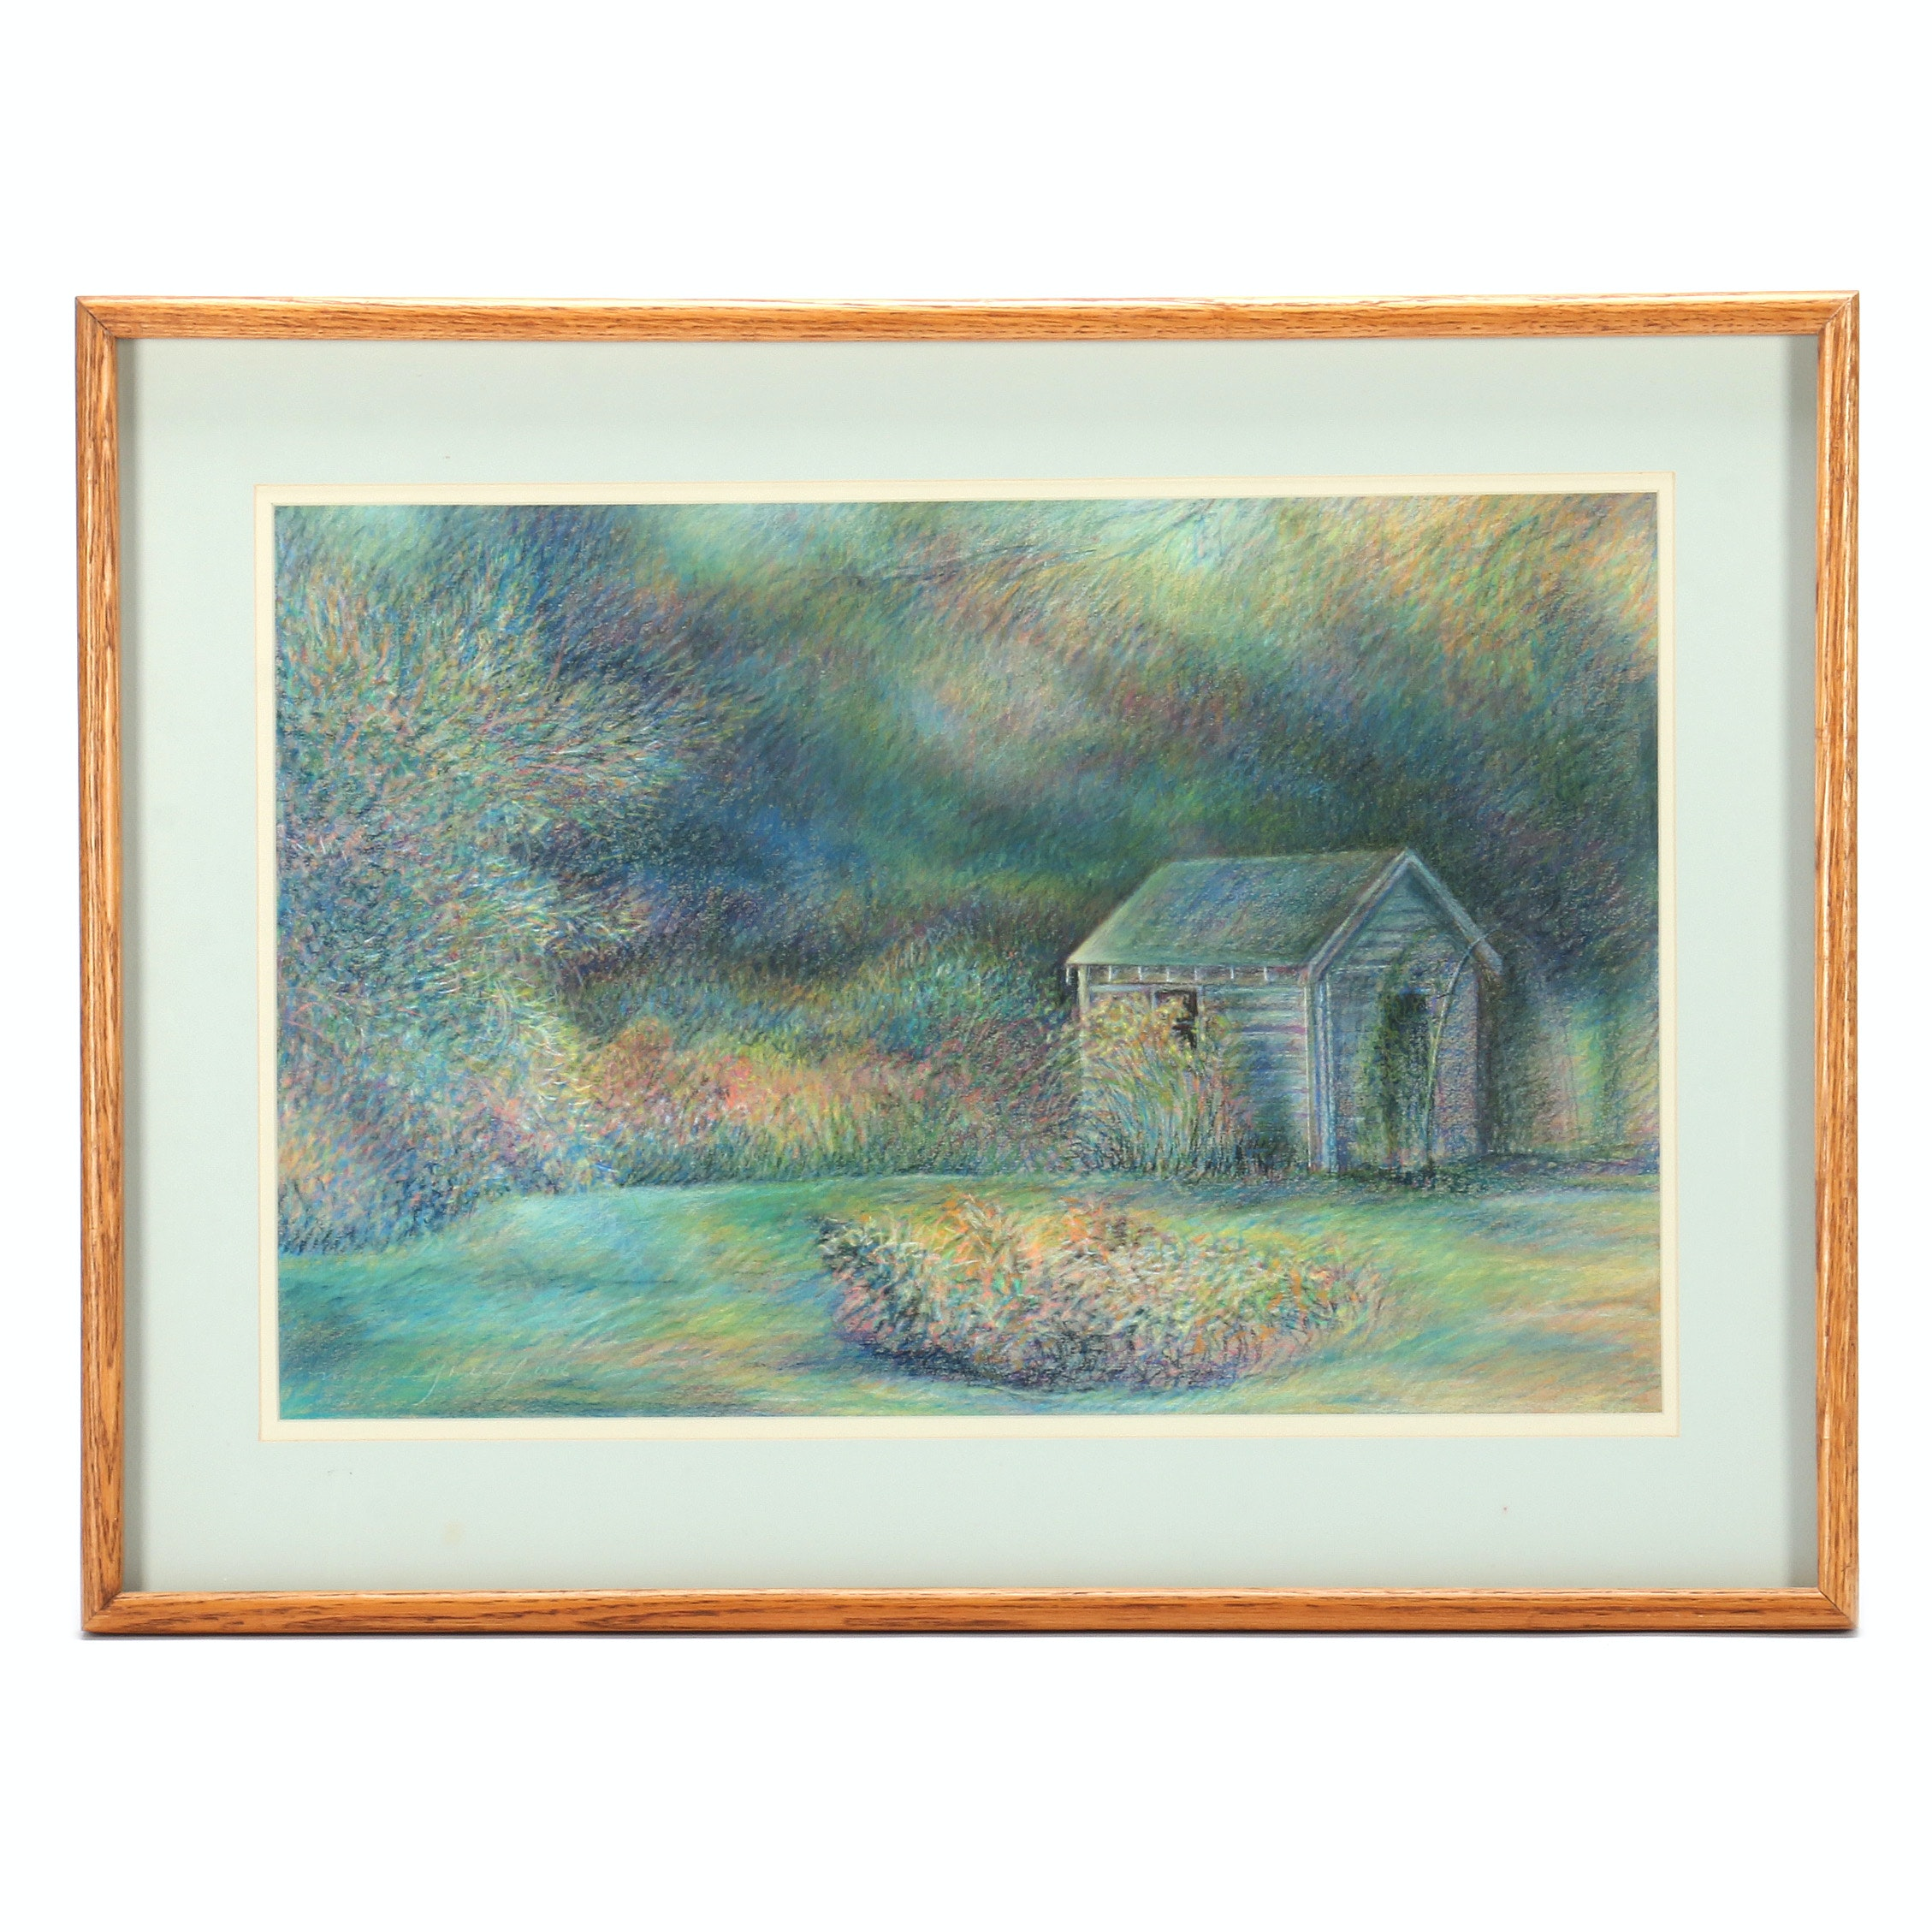 Marlana Stoddard Original Pastel Drawing of Shed in Landscape